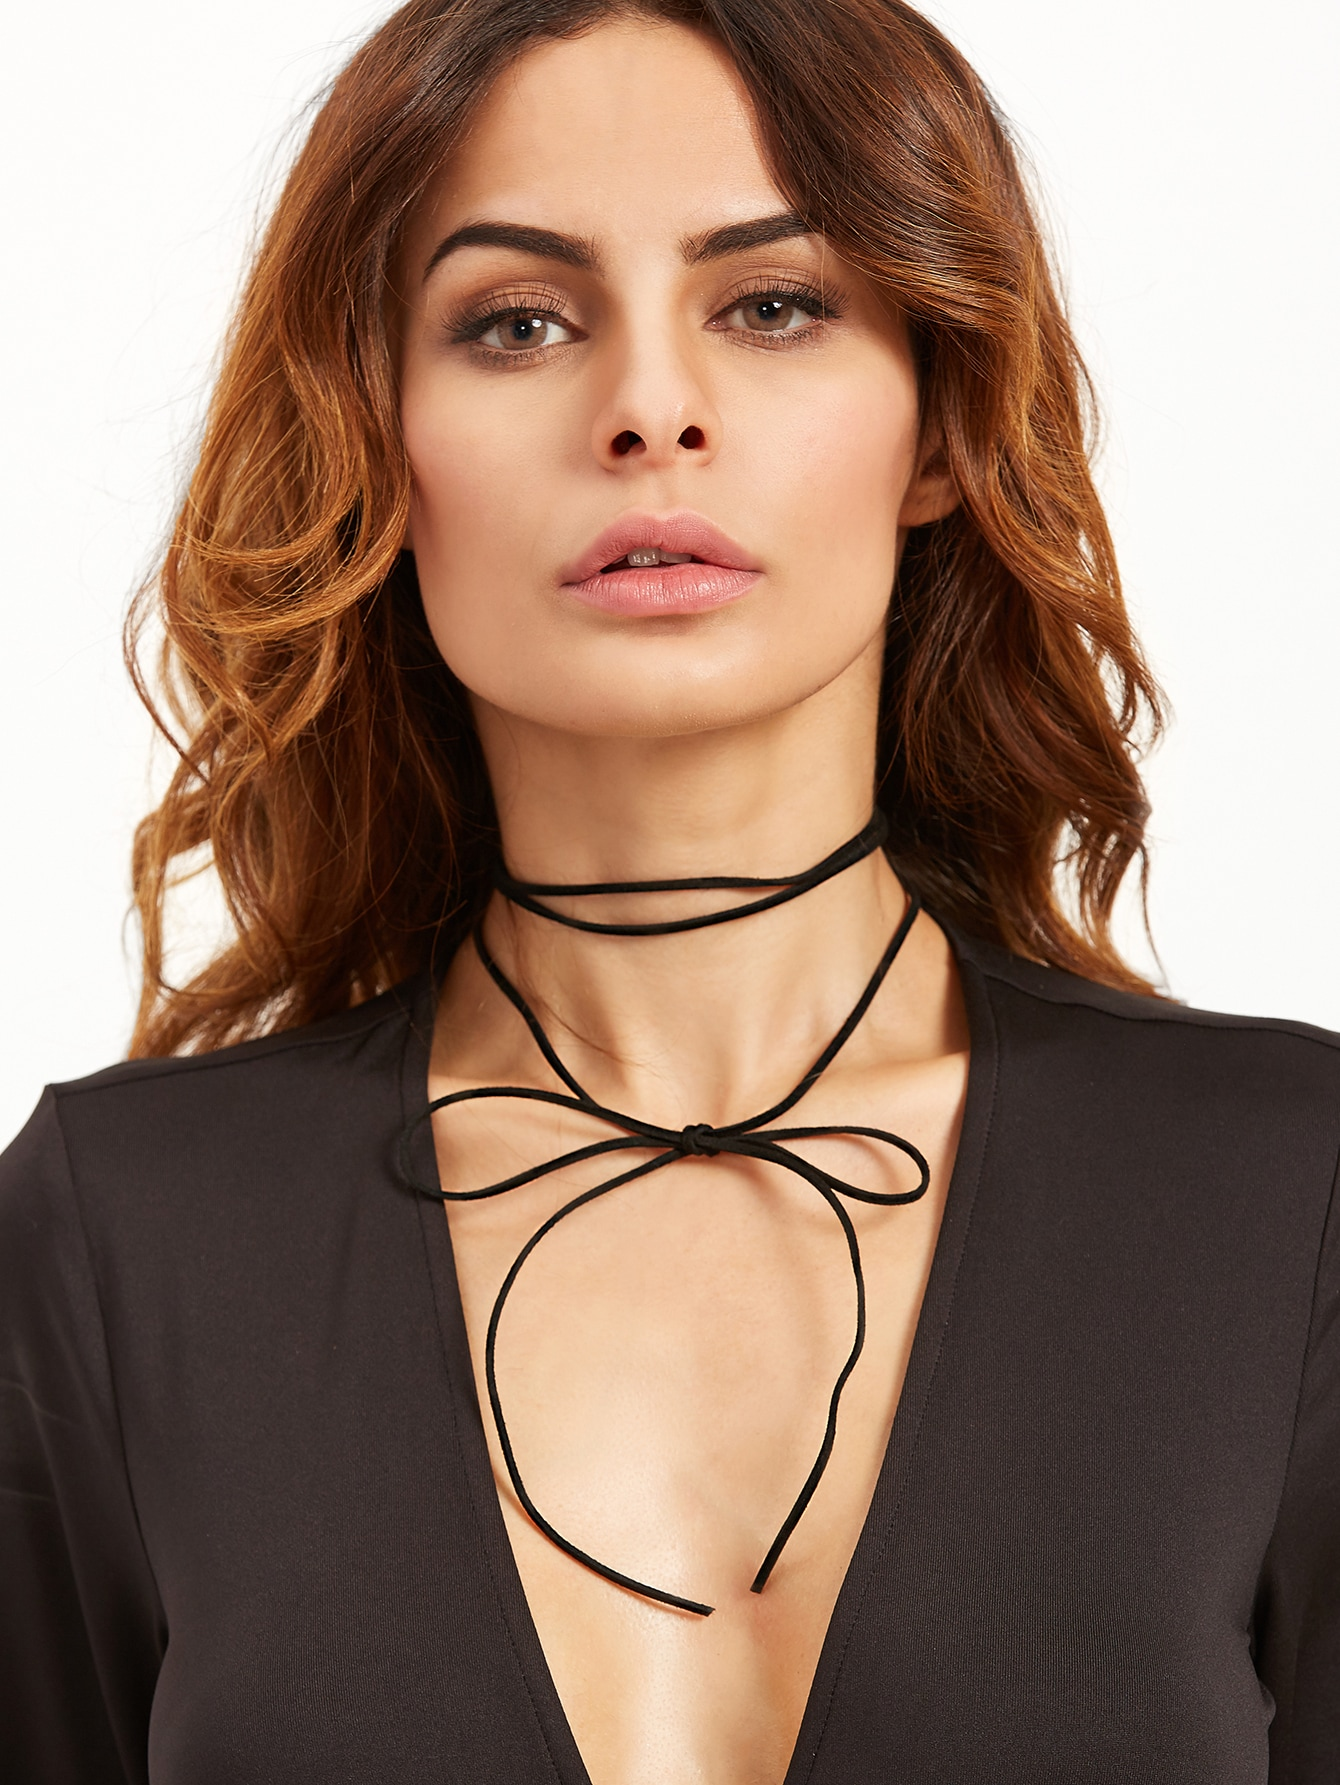 Black Bow Simple Wrap Choker NecklaceBlack Bow Simple Wrap Choker Necklace<br><br>color: Black<br>size: None